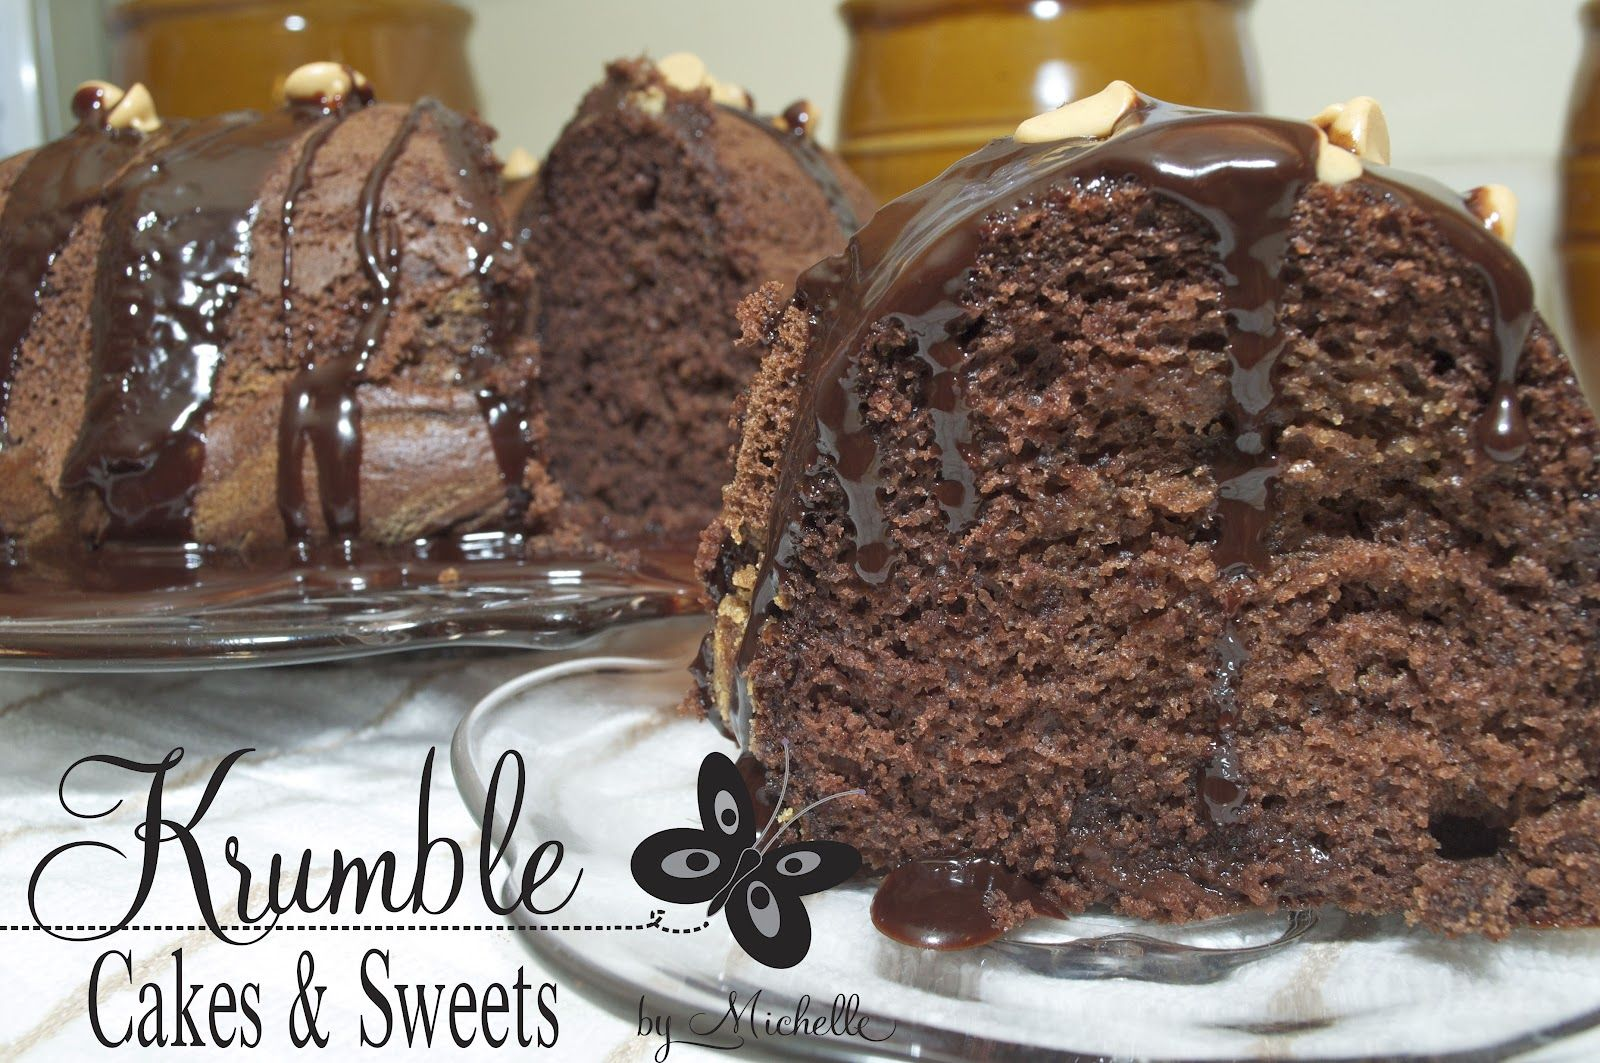 Krumble: Cakes & Sweets by Michelle: Peanut Butter Swirl Chocolate Bundt Cake